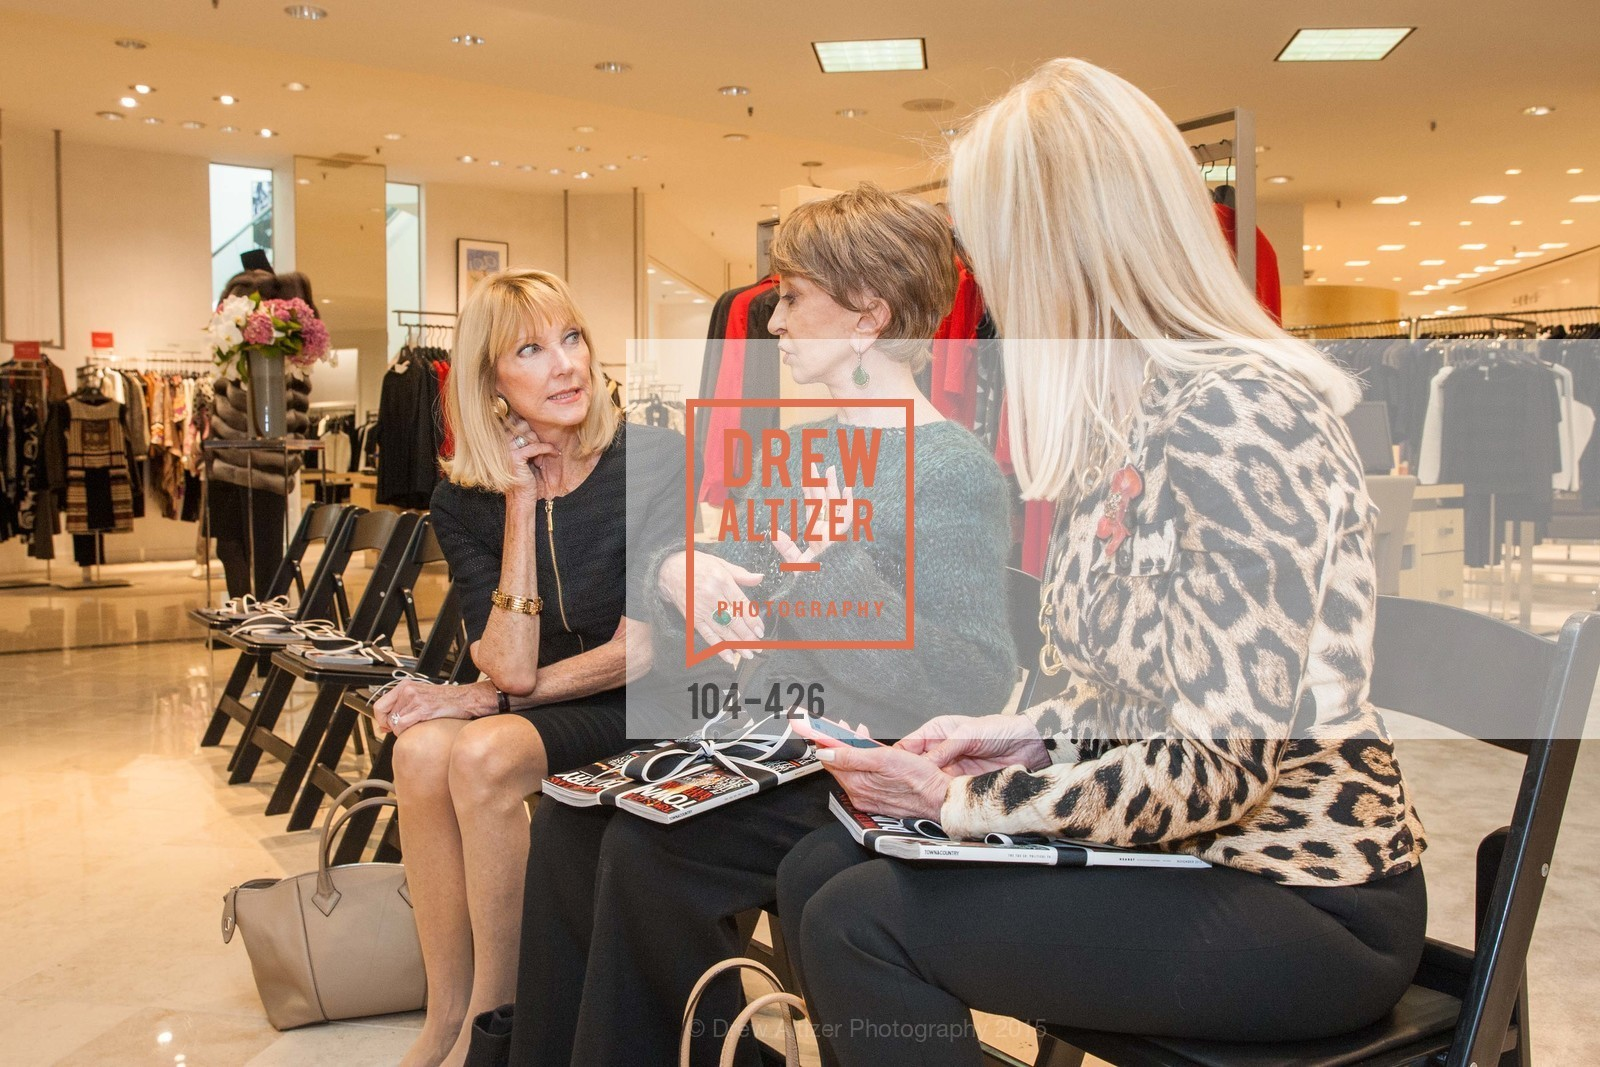 Mary Lou Maier, Roberta Sherman, Rindi at Saks Fur Salon, Saks Fifth Avenue, Fur Salon, October 29th, 2015,Drew Altizer, Drew Altizer Photography, full-service agency, private events, San Francisco photographer, photographer california